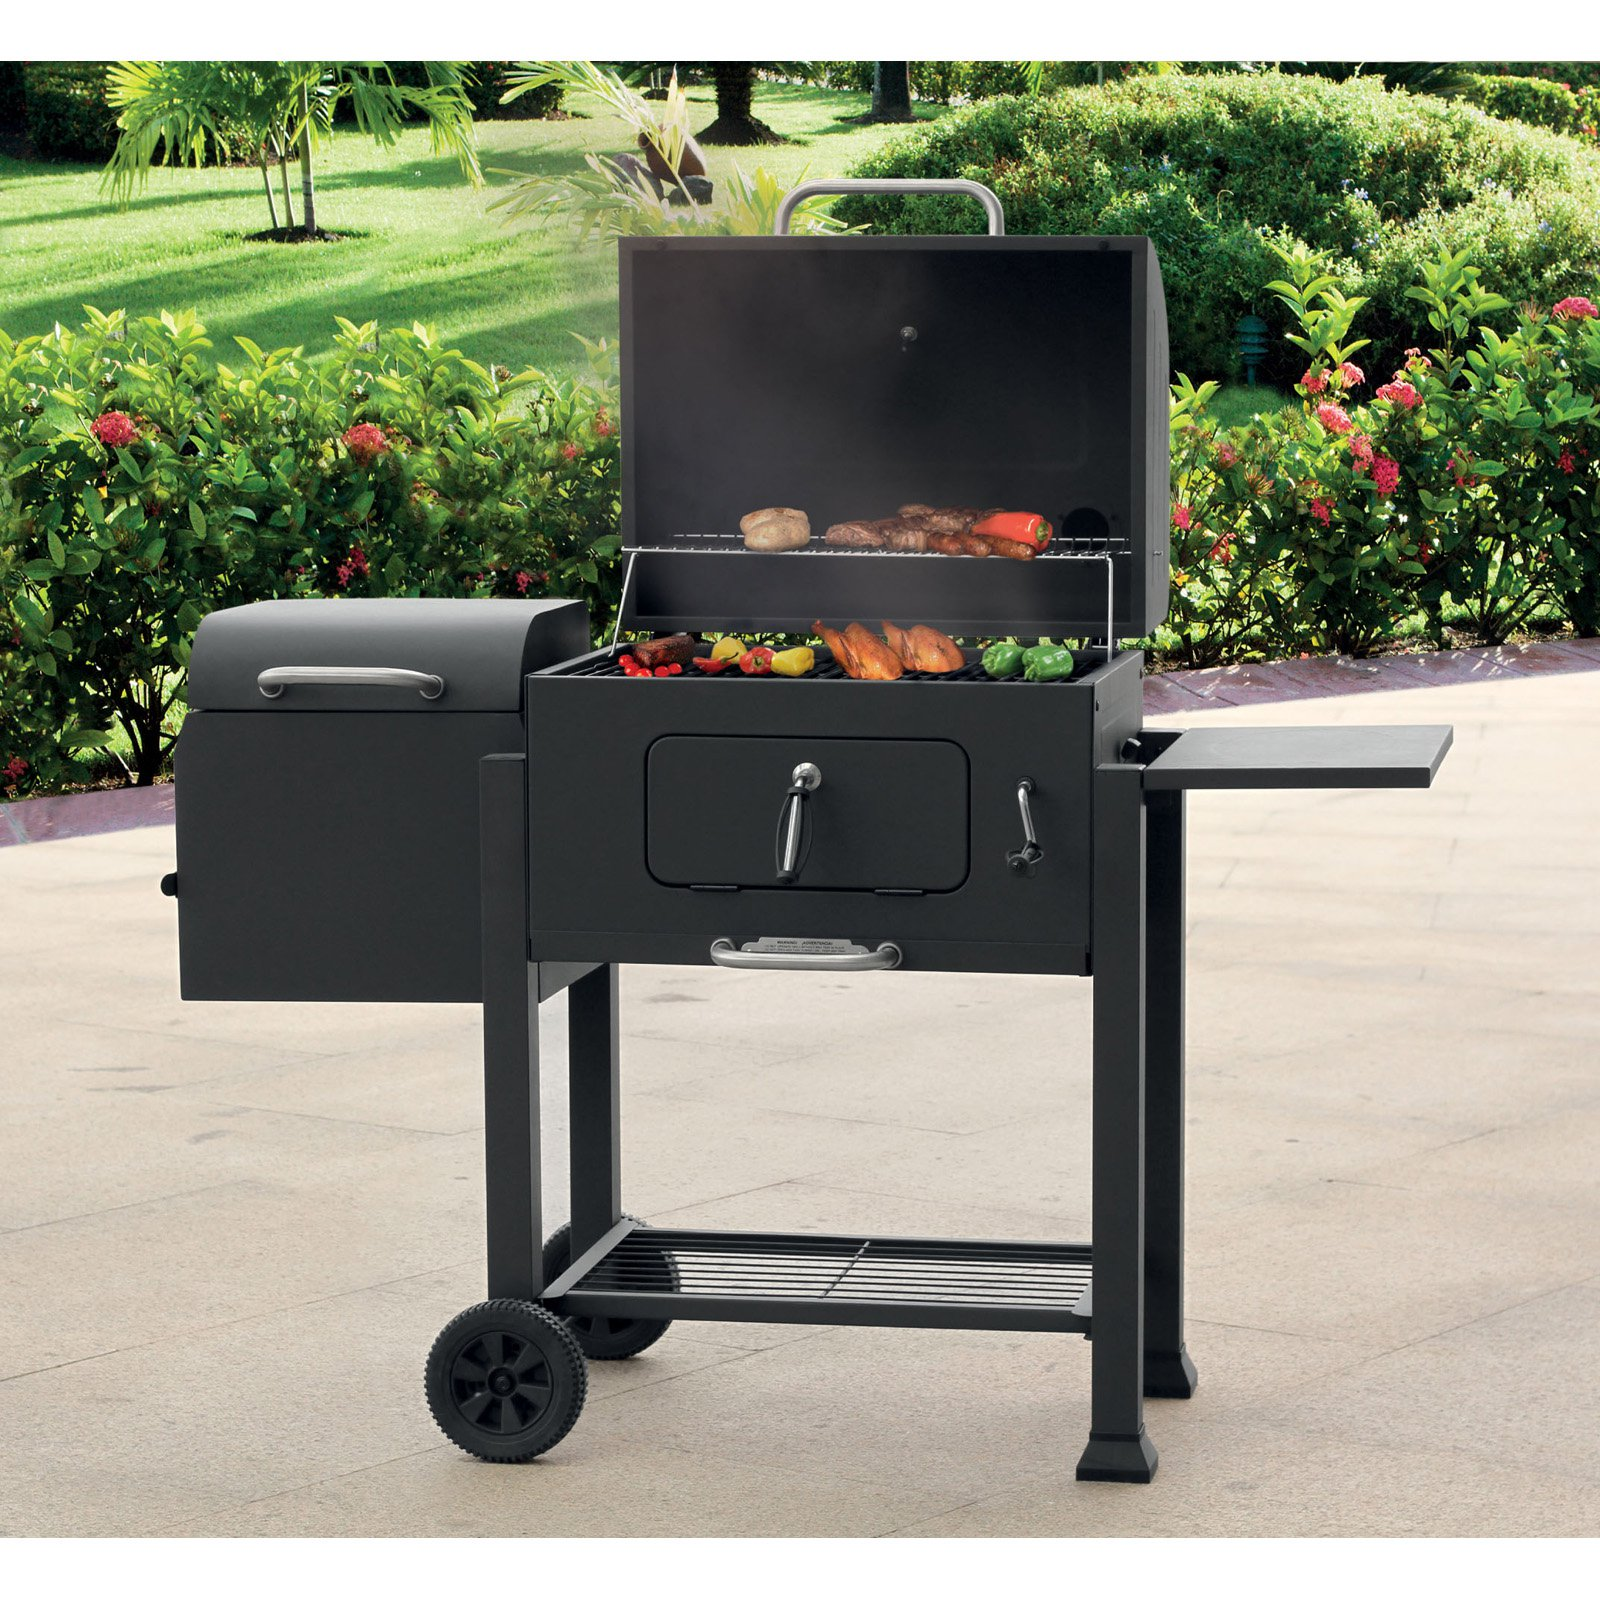 Landmann USA Vista Barbecue Charcoal Grill with Offset Smoker Box by Charcoal Grills